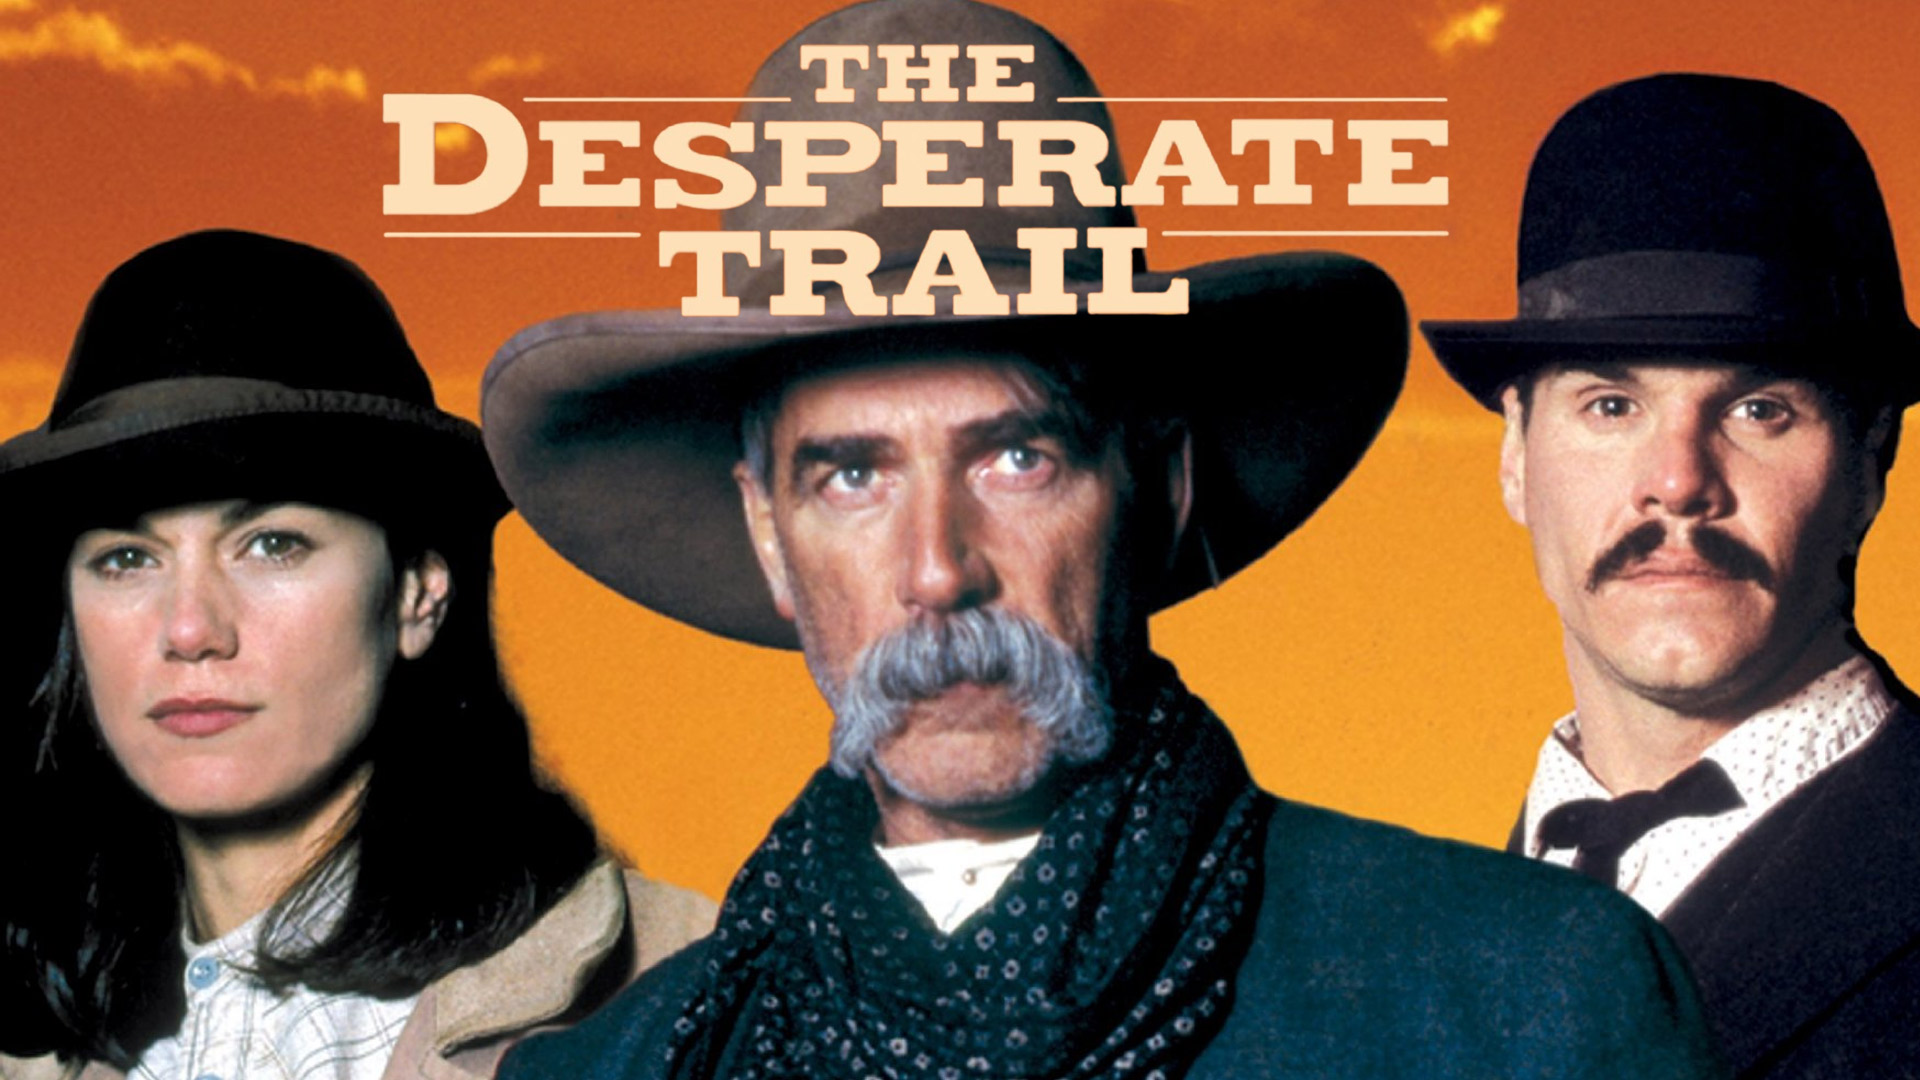 The Desperate Trail